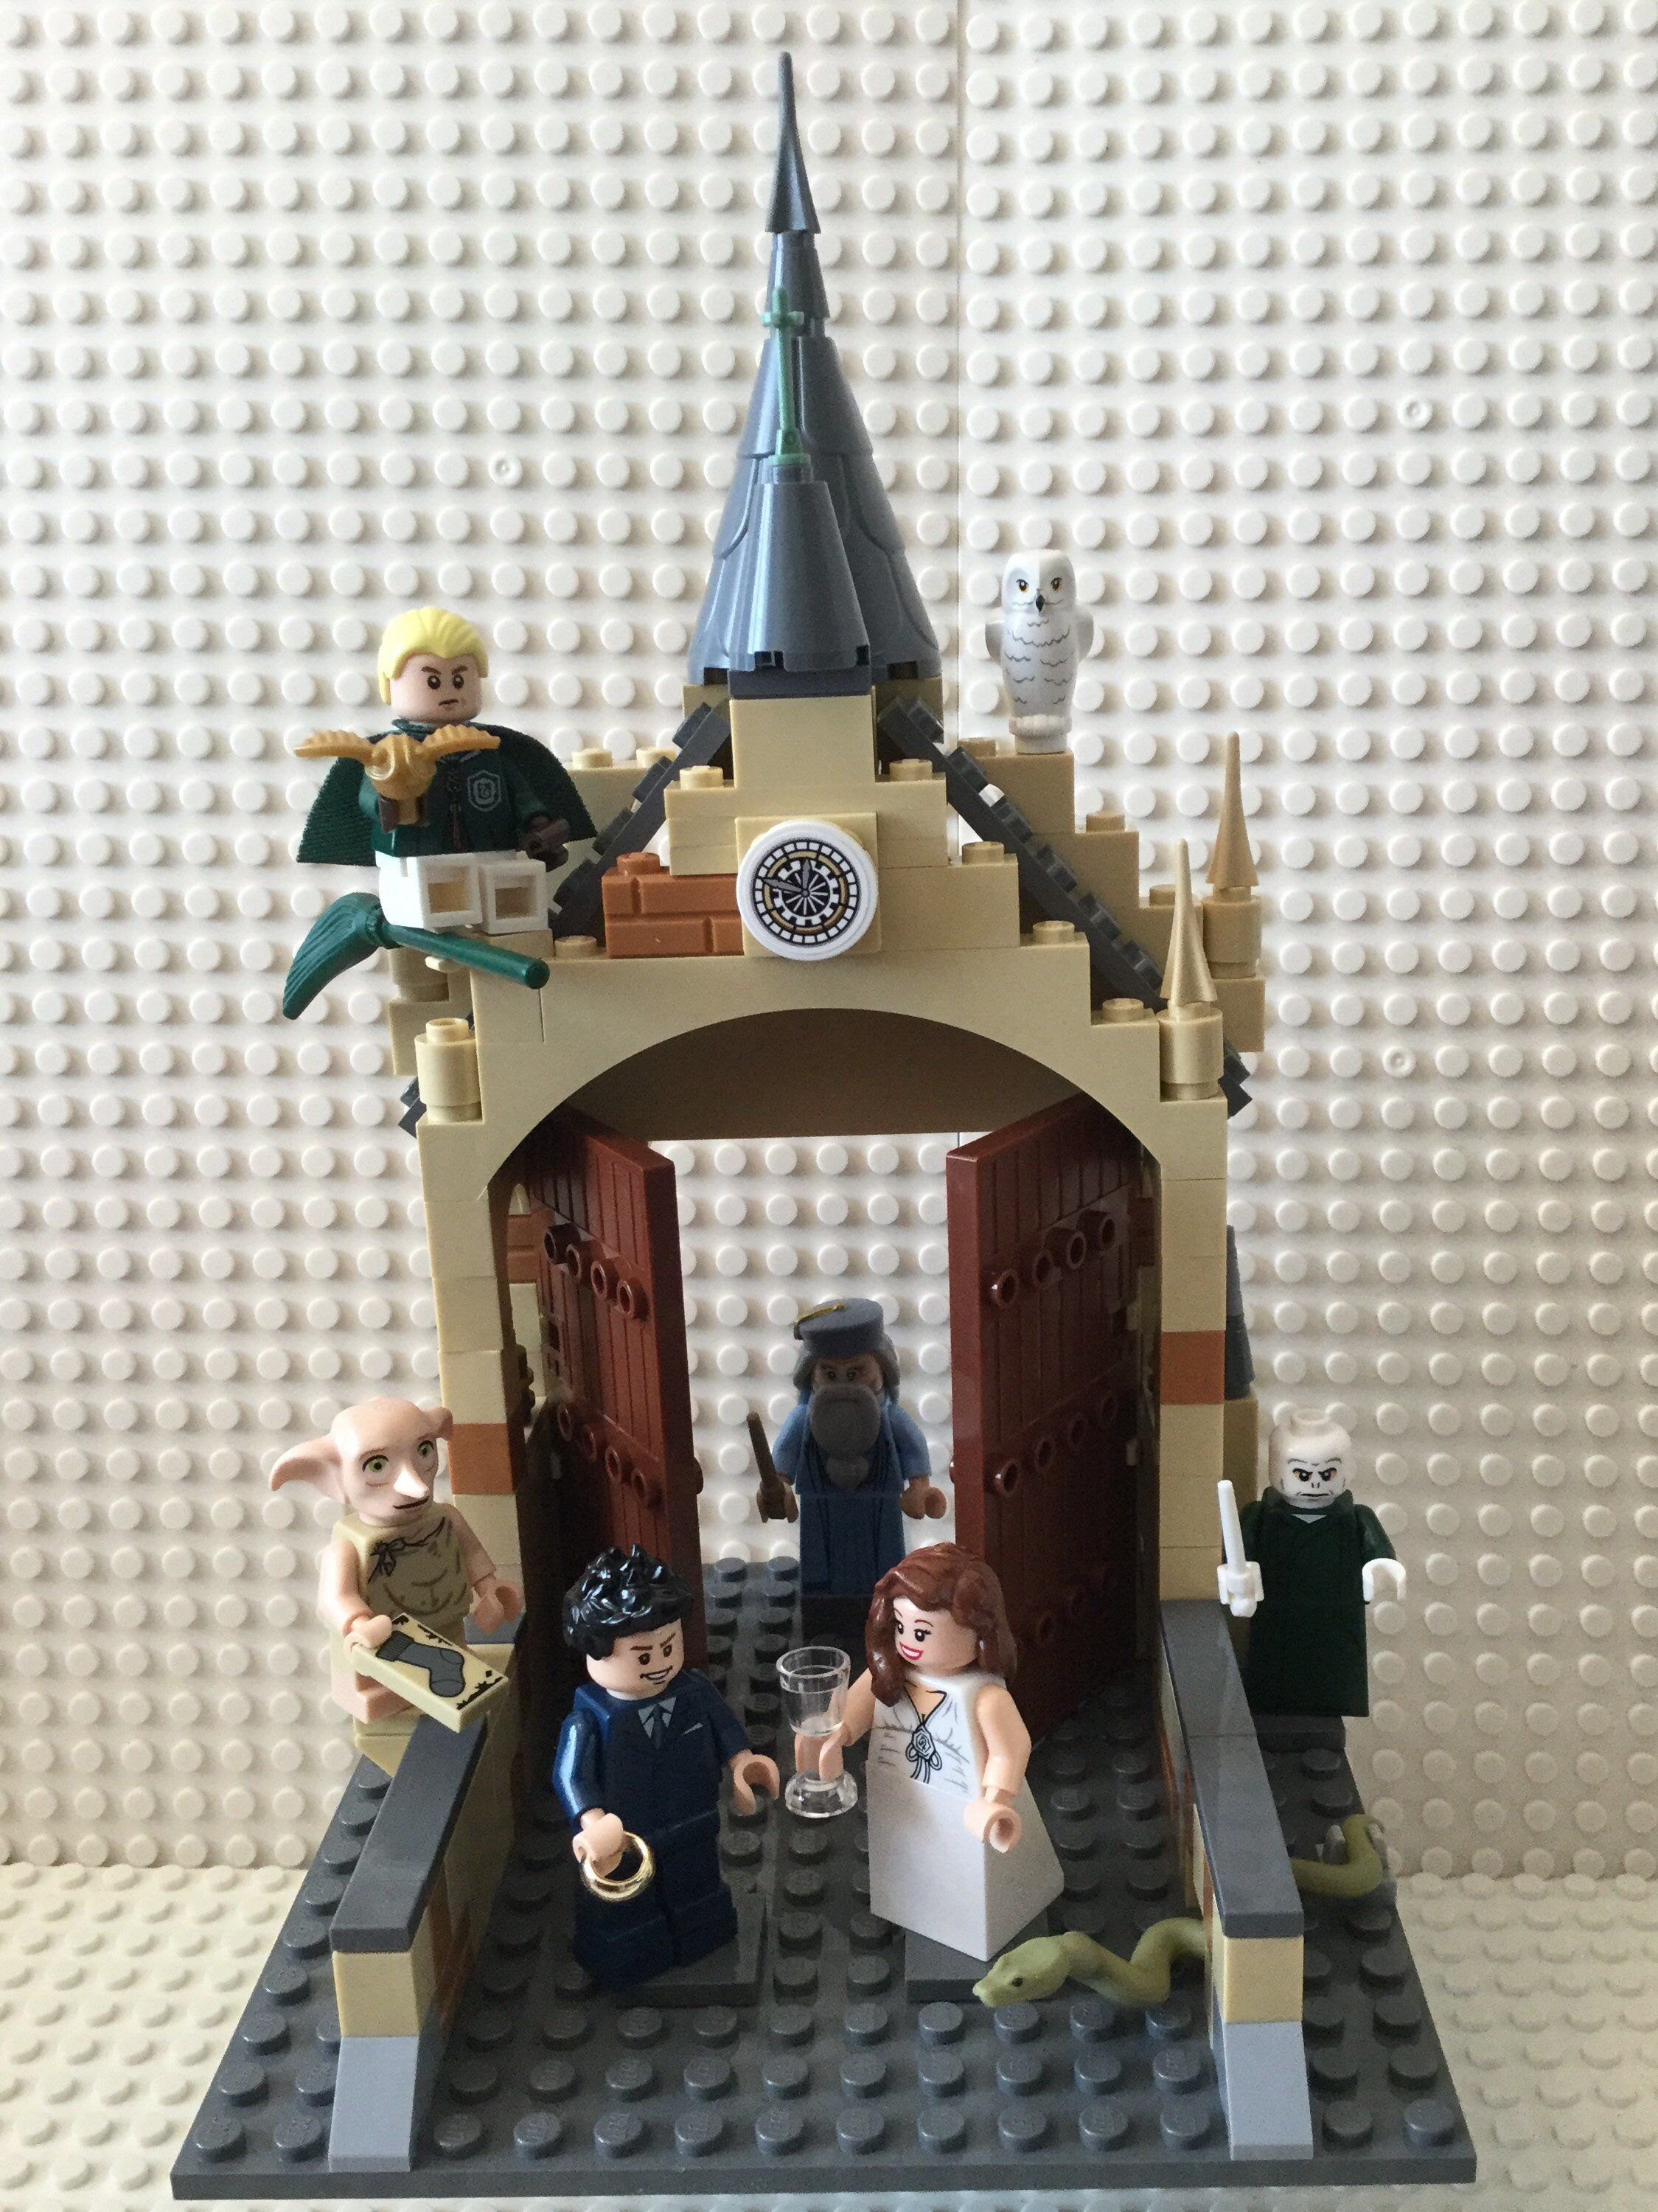 Excited To Share This New Item In My Etsyshop Harrypotter Hogwarts Themed Wedding Caketopper B Lego Wedding Cakes Harry Potter Wedding Theme Lego Wedding